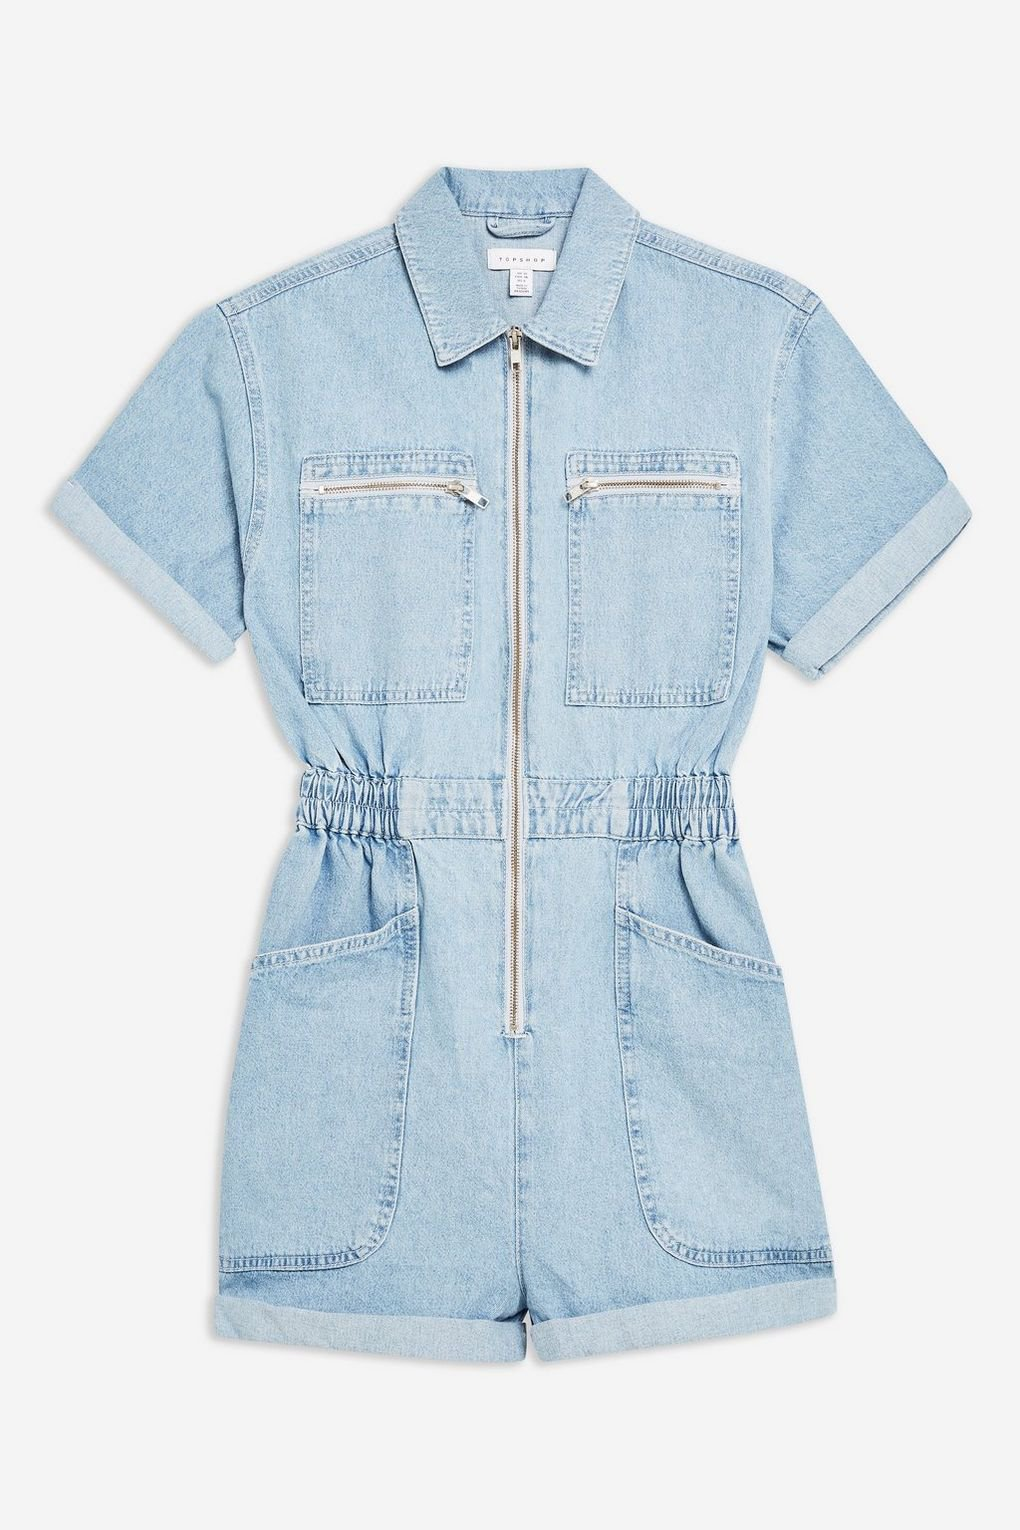 Zip Bleach Denim Romper - Denim - Clothing - Topshop USA